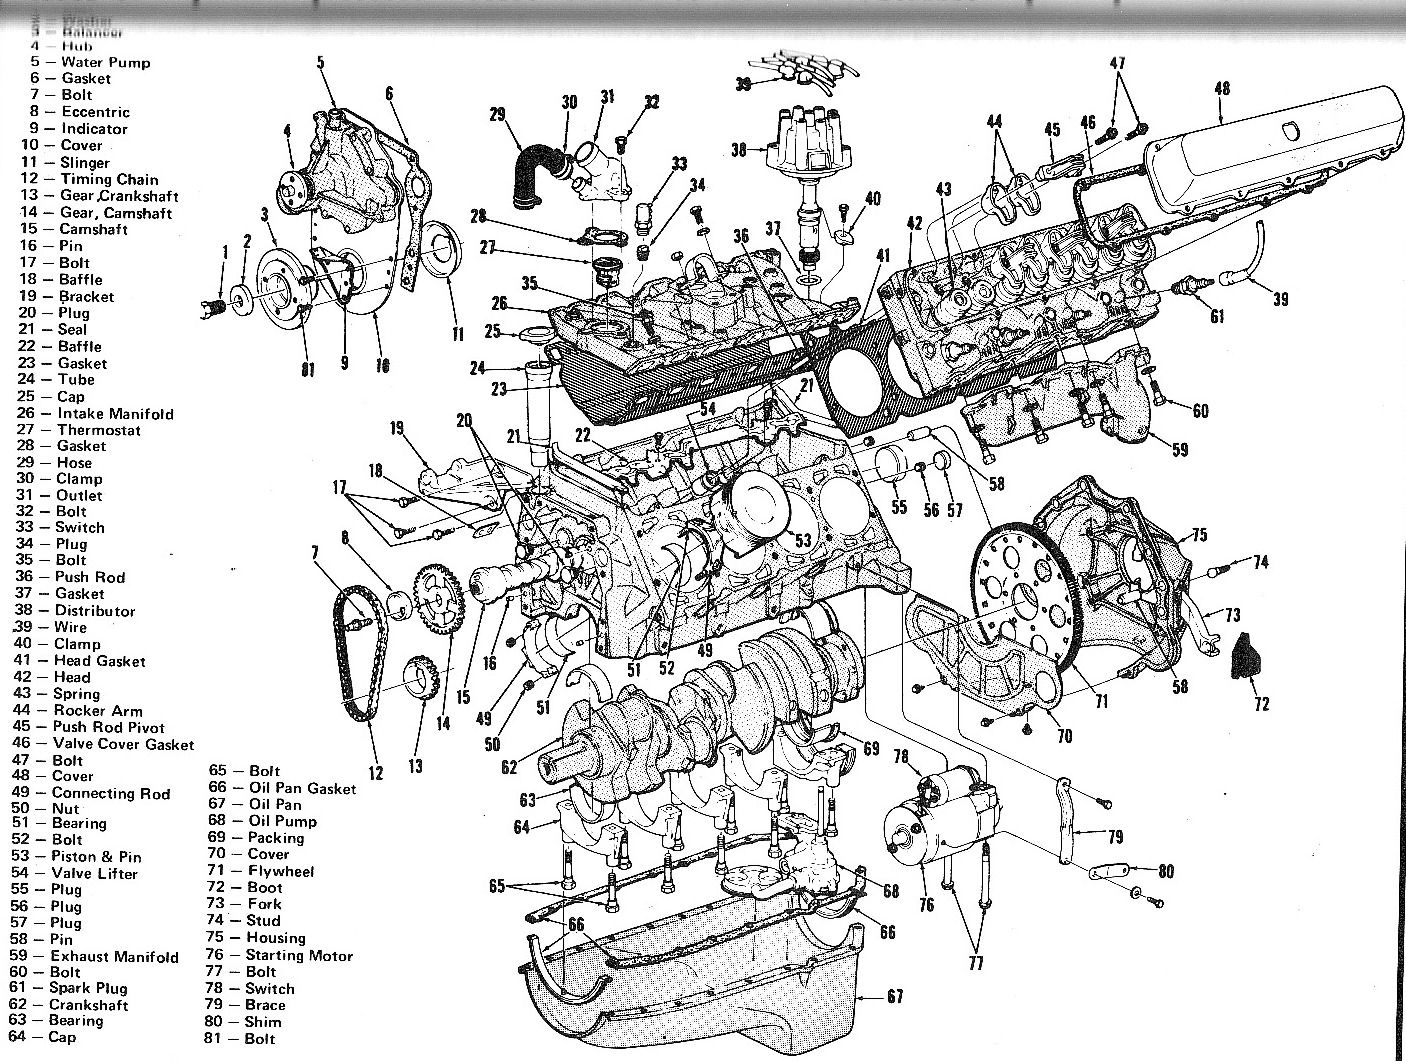 Complete V-8 Engine Diagram | Cars and motorcycles ...